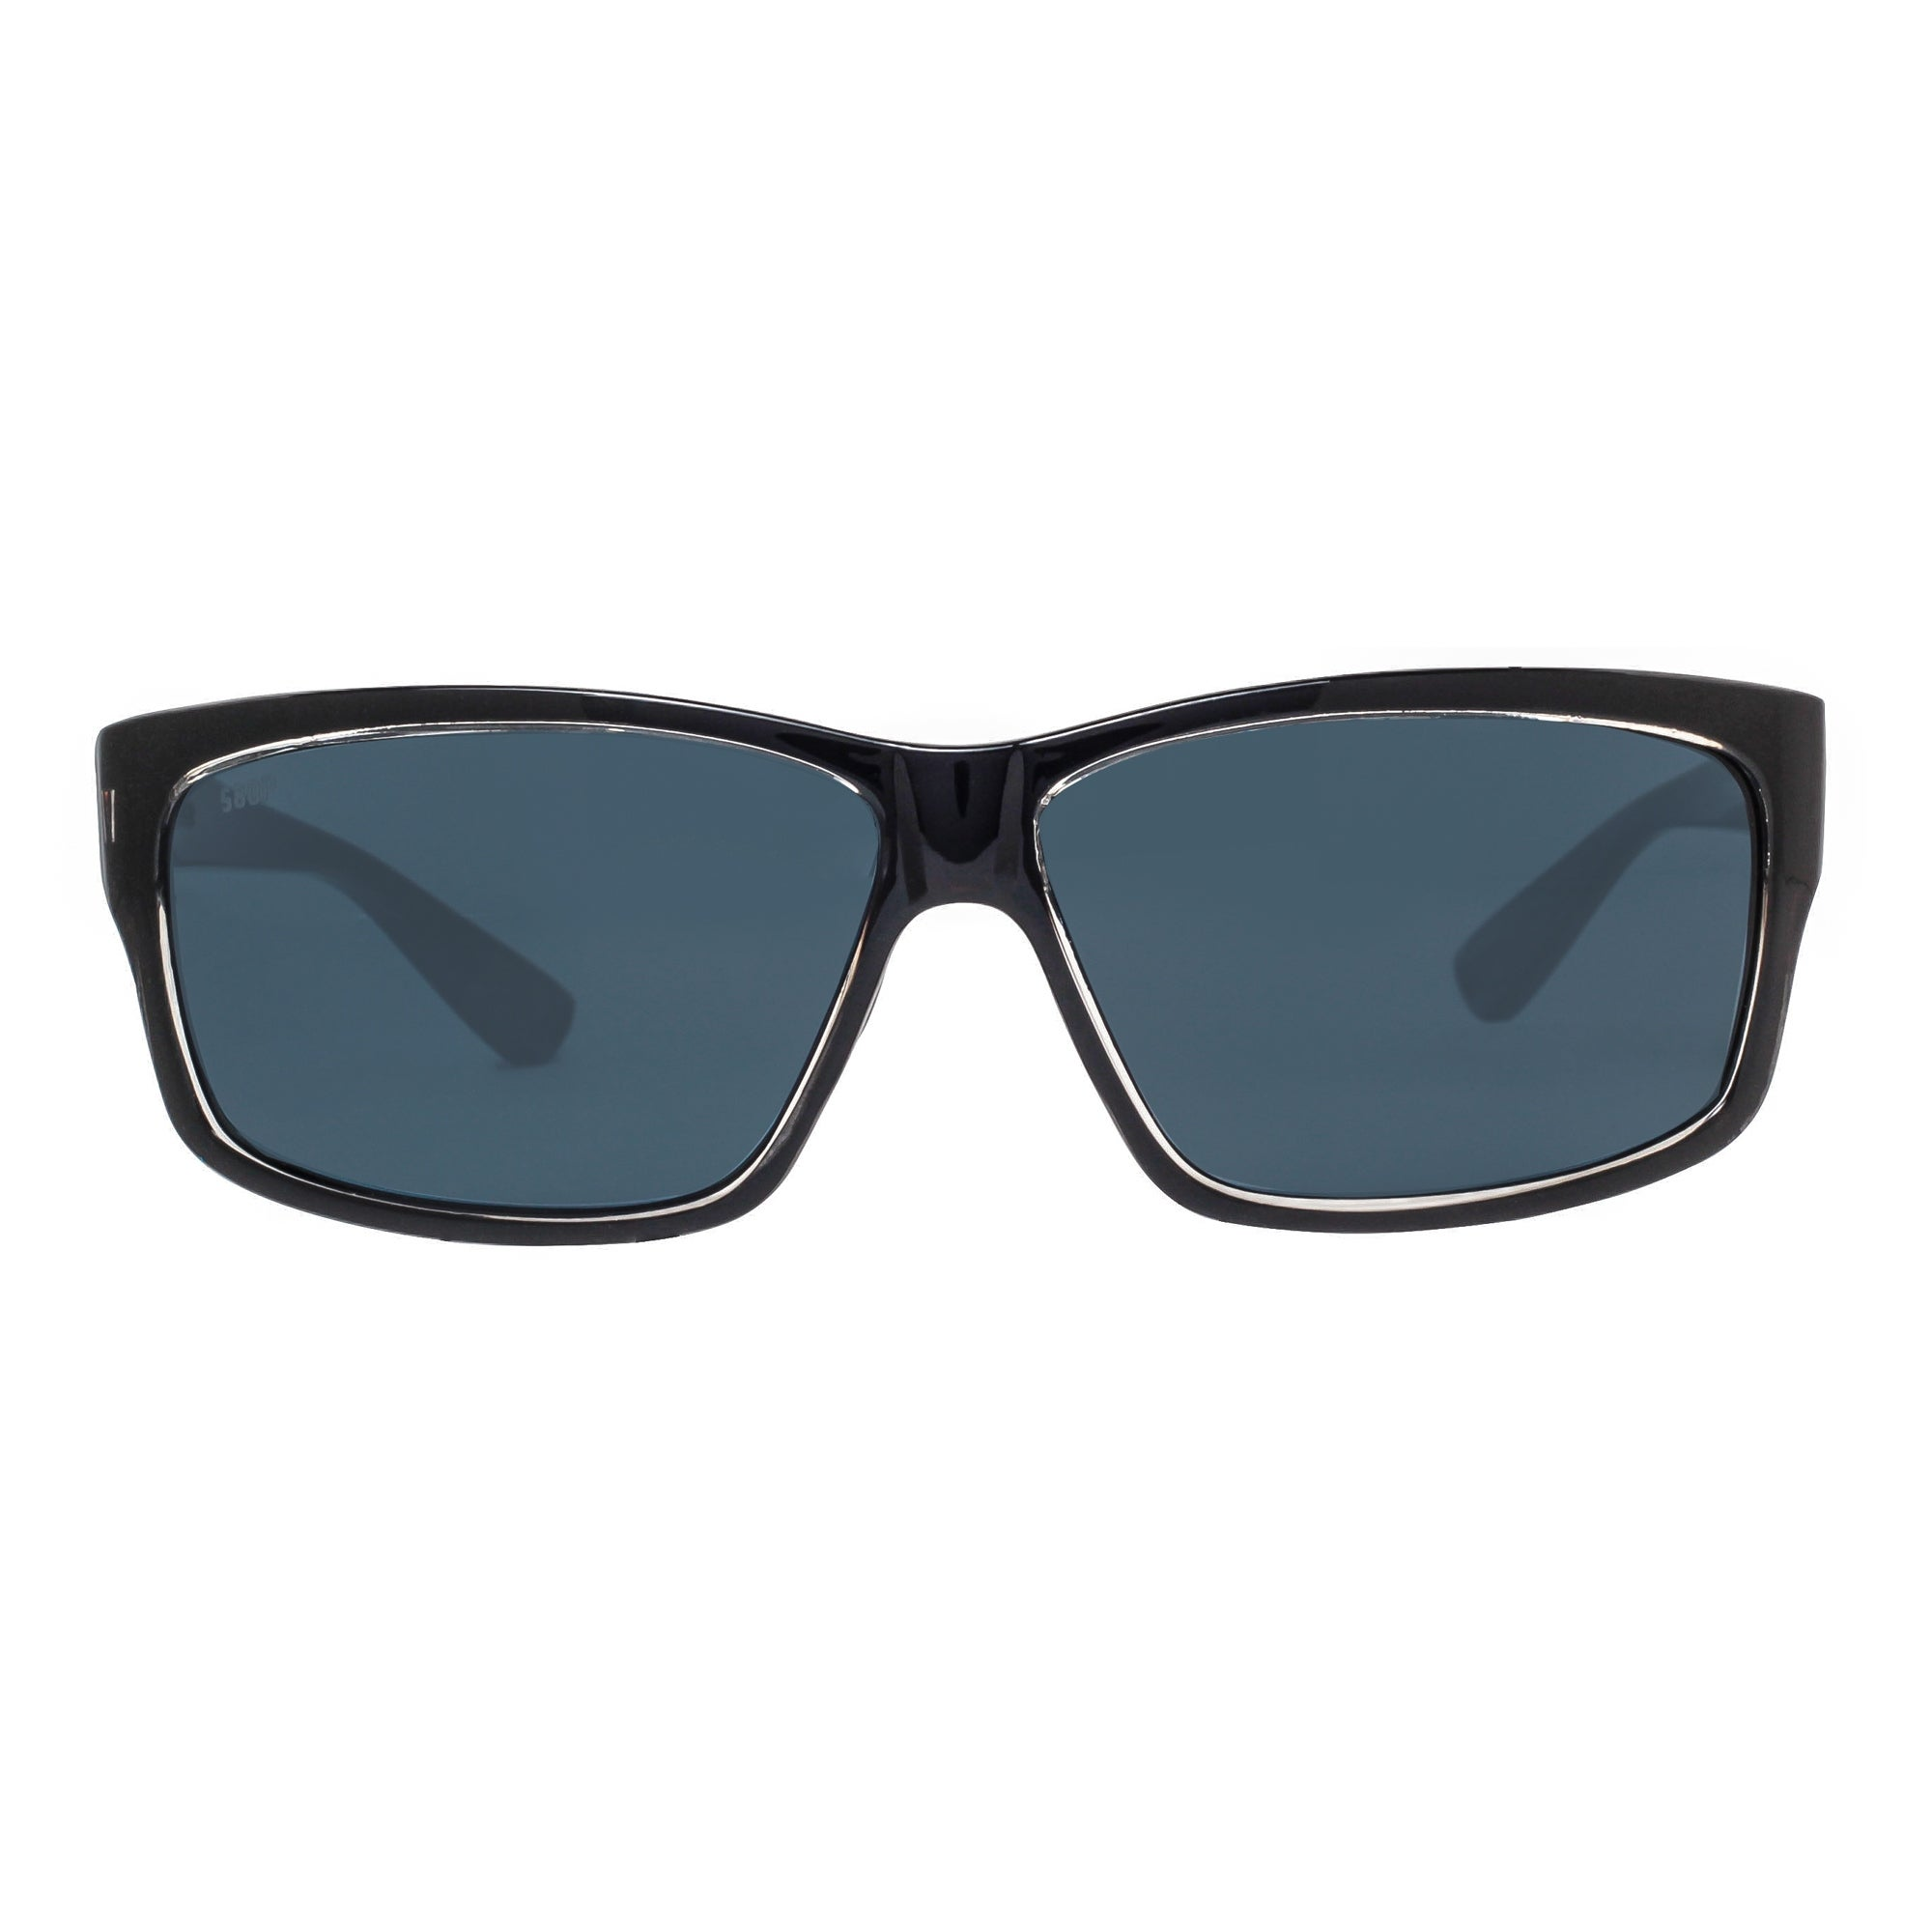 892751d3b1e05 Shop Costa Del Mar Cut UT47OGP Squall Black 580P Gray Polarized Rectangle  Sunglasses - squall black - 59mm-18mm-120mm - Free Shipping Today -  Overstock - ...